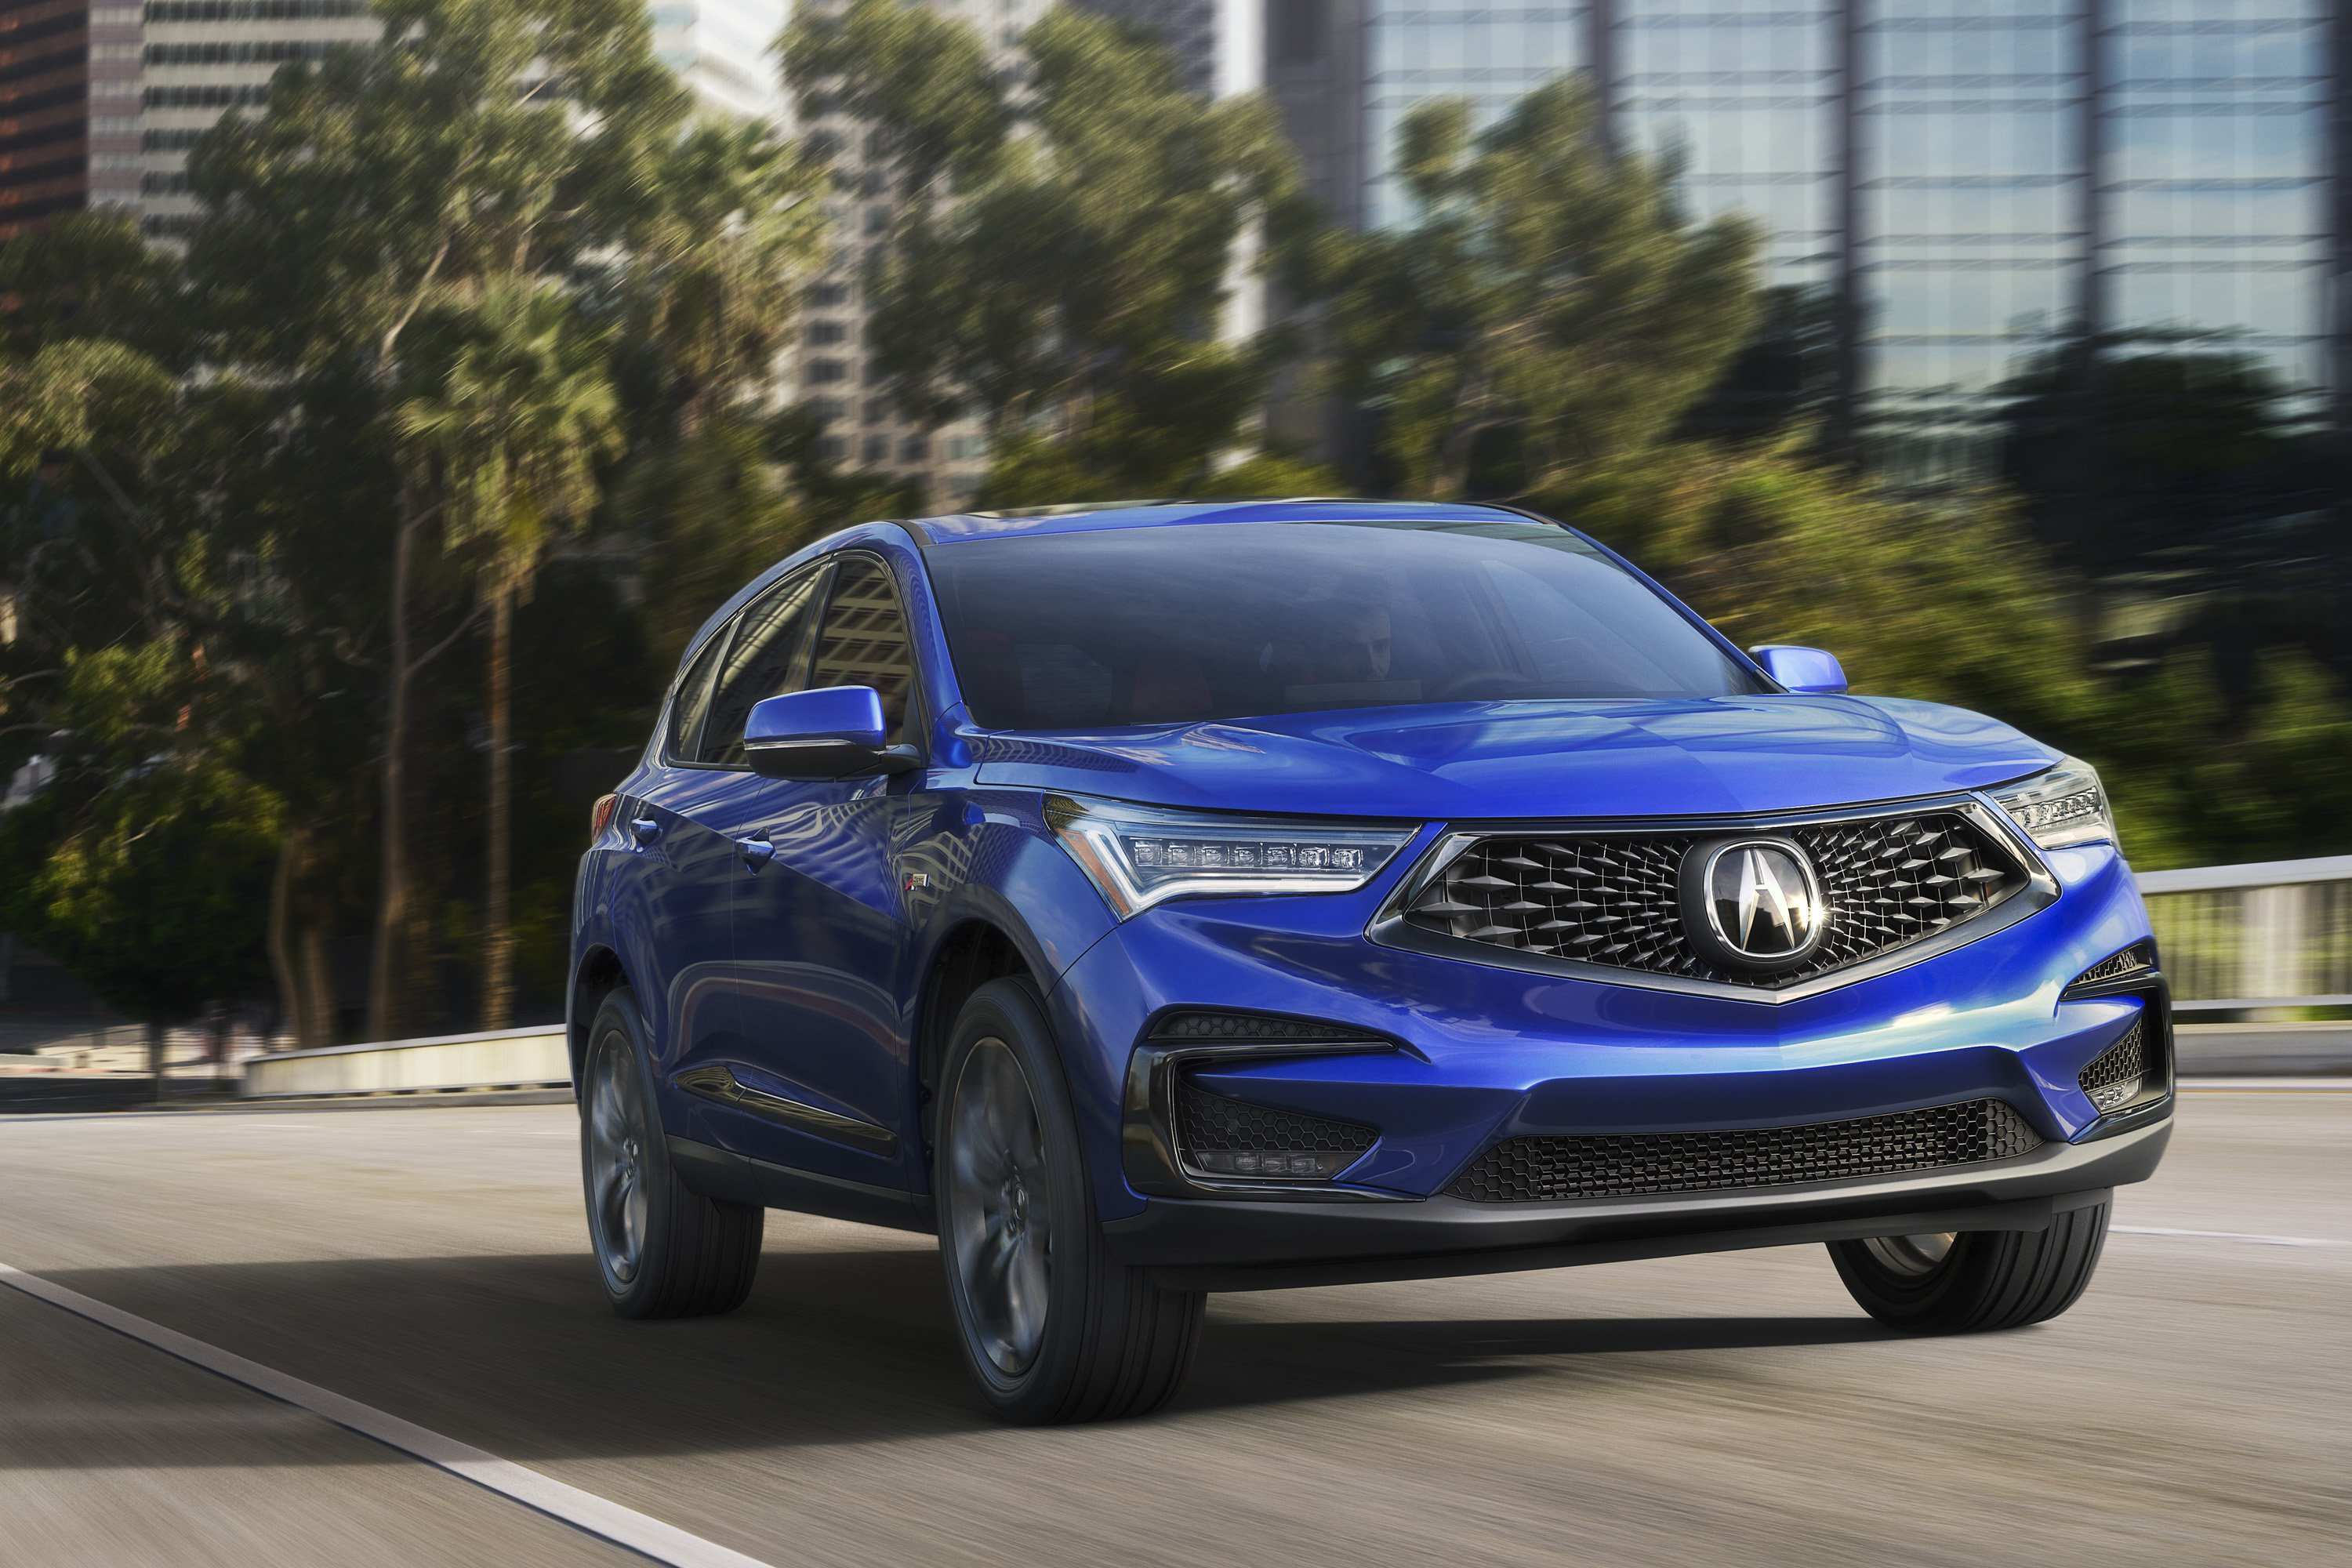 32 Concept of 2019 Acura Rdx Preview Prices with 2019 Acura Rdx Preview